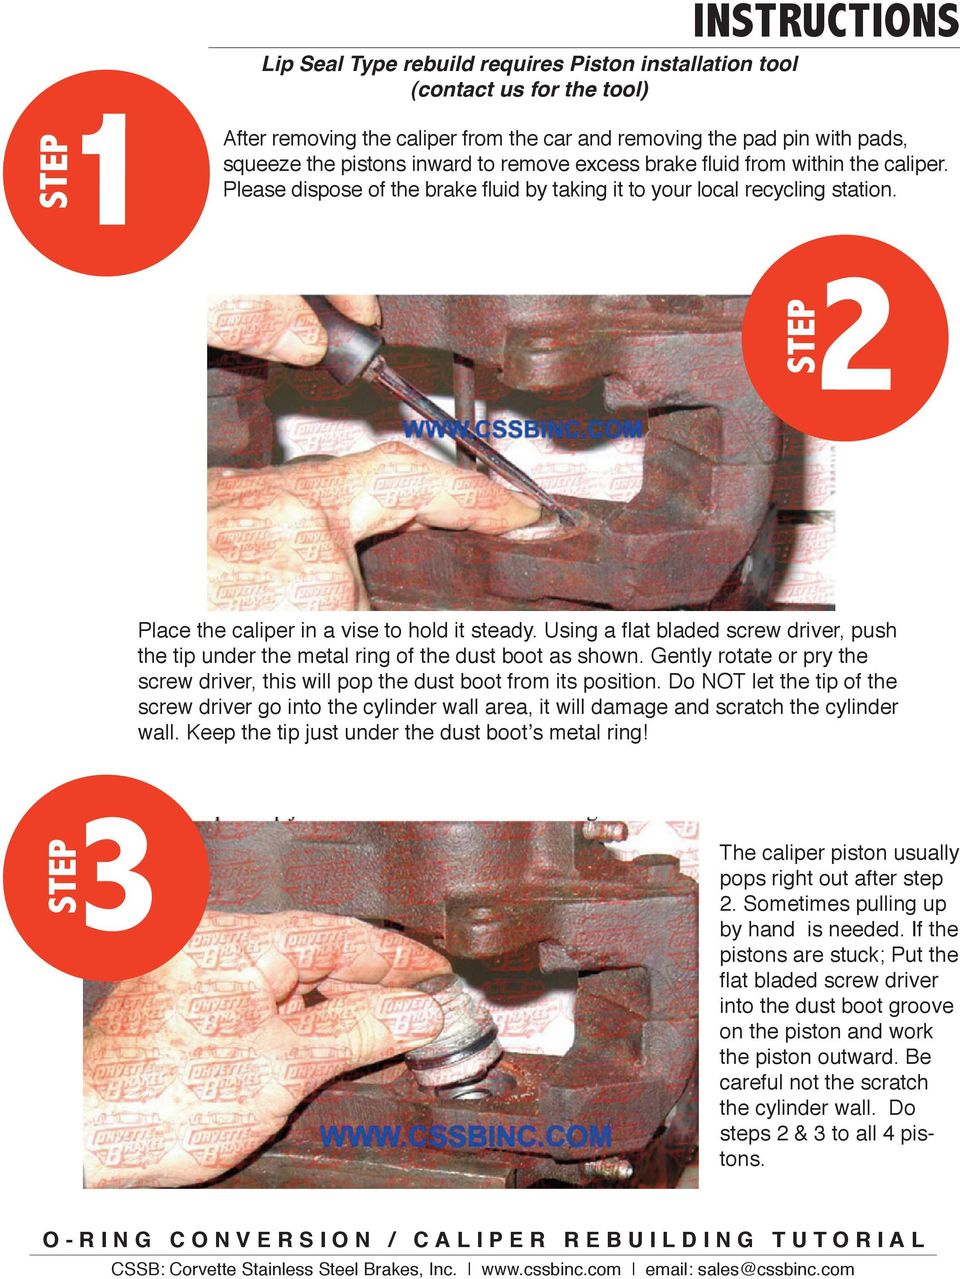 Using a flat bladed screw driver, push the tip under the metal ring of the dust boot as shown. Gently rotate or pry the screw driver, this will pop the dust boot from its position.